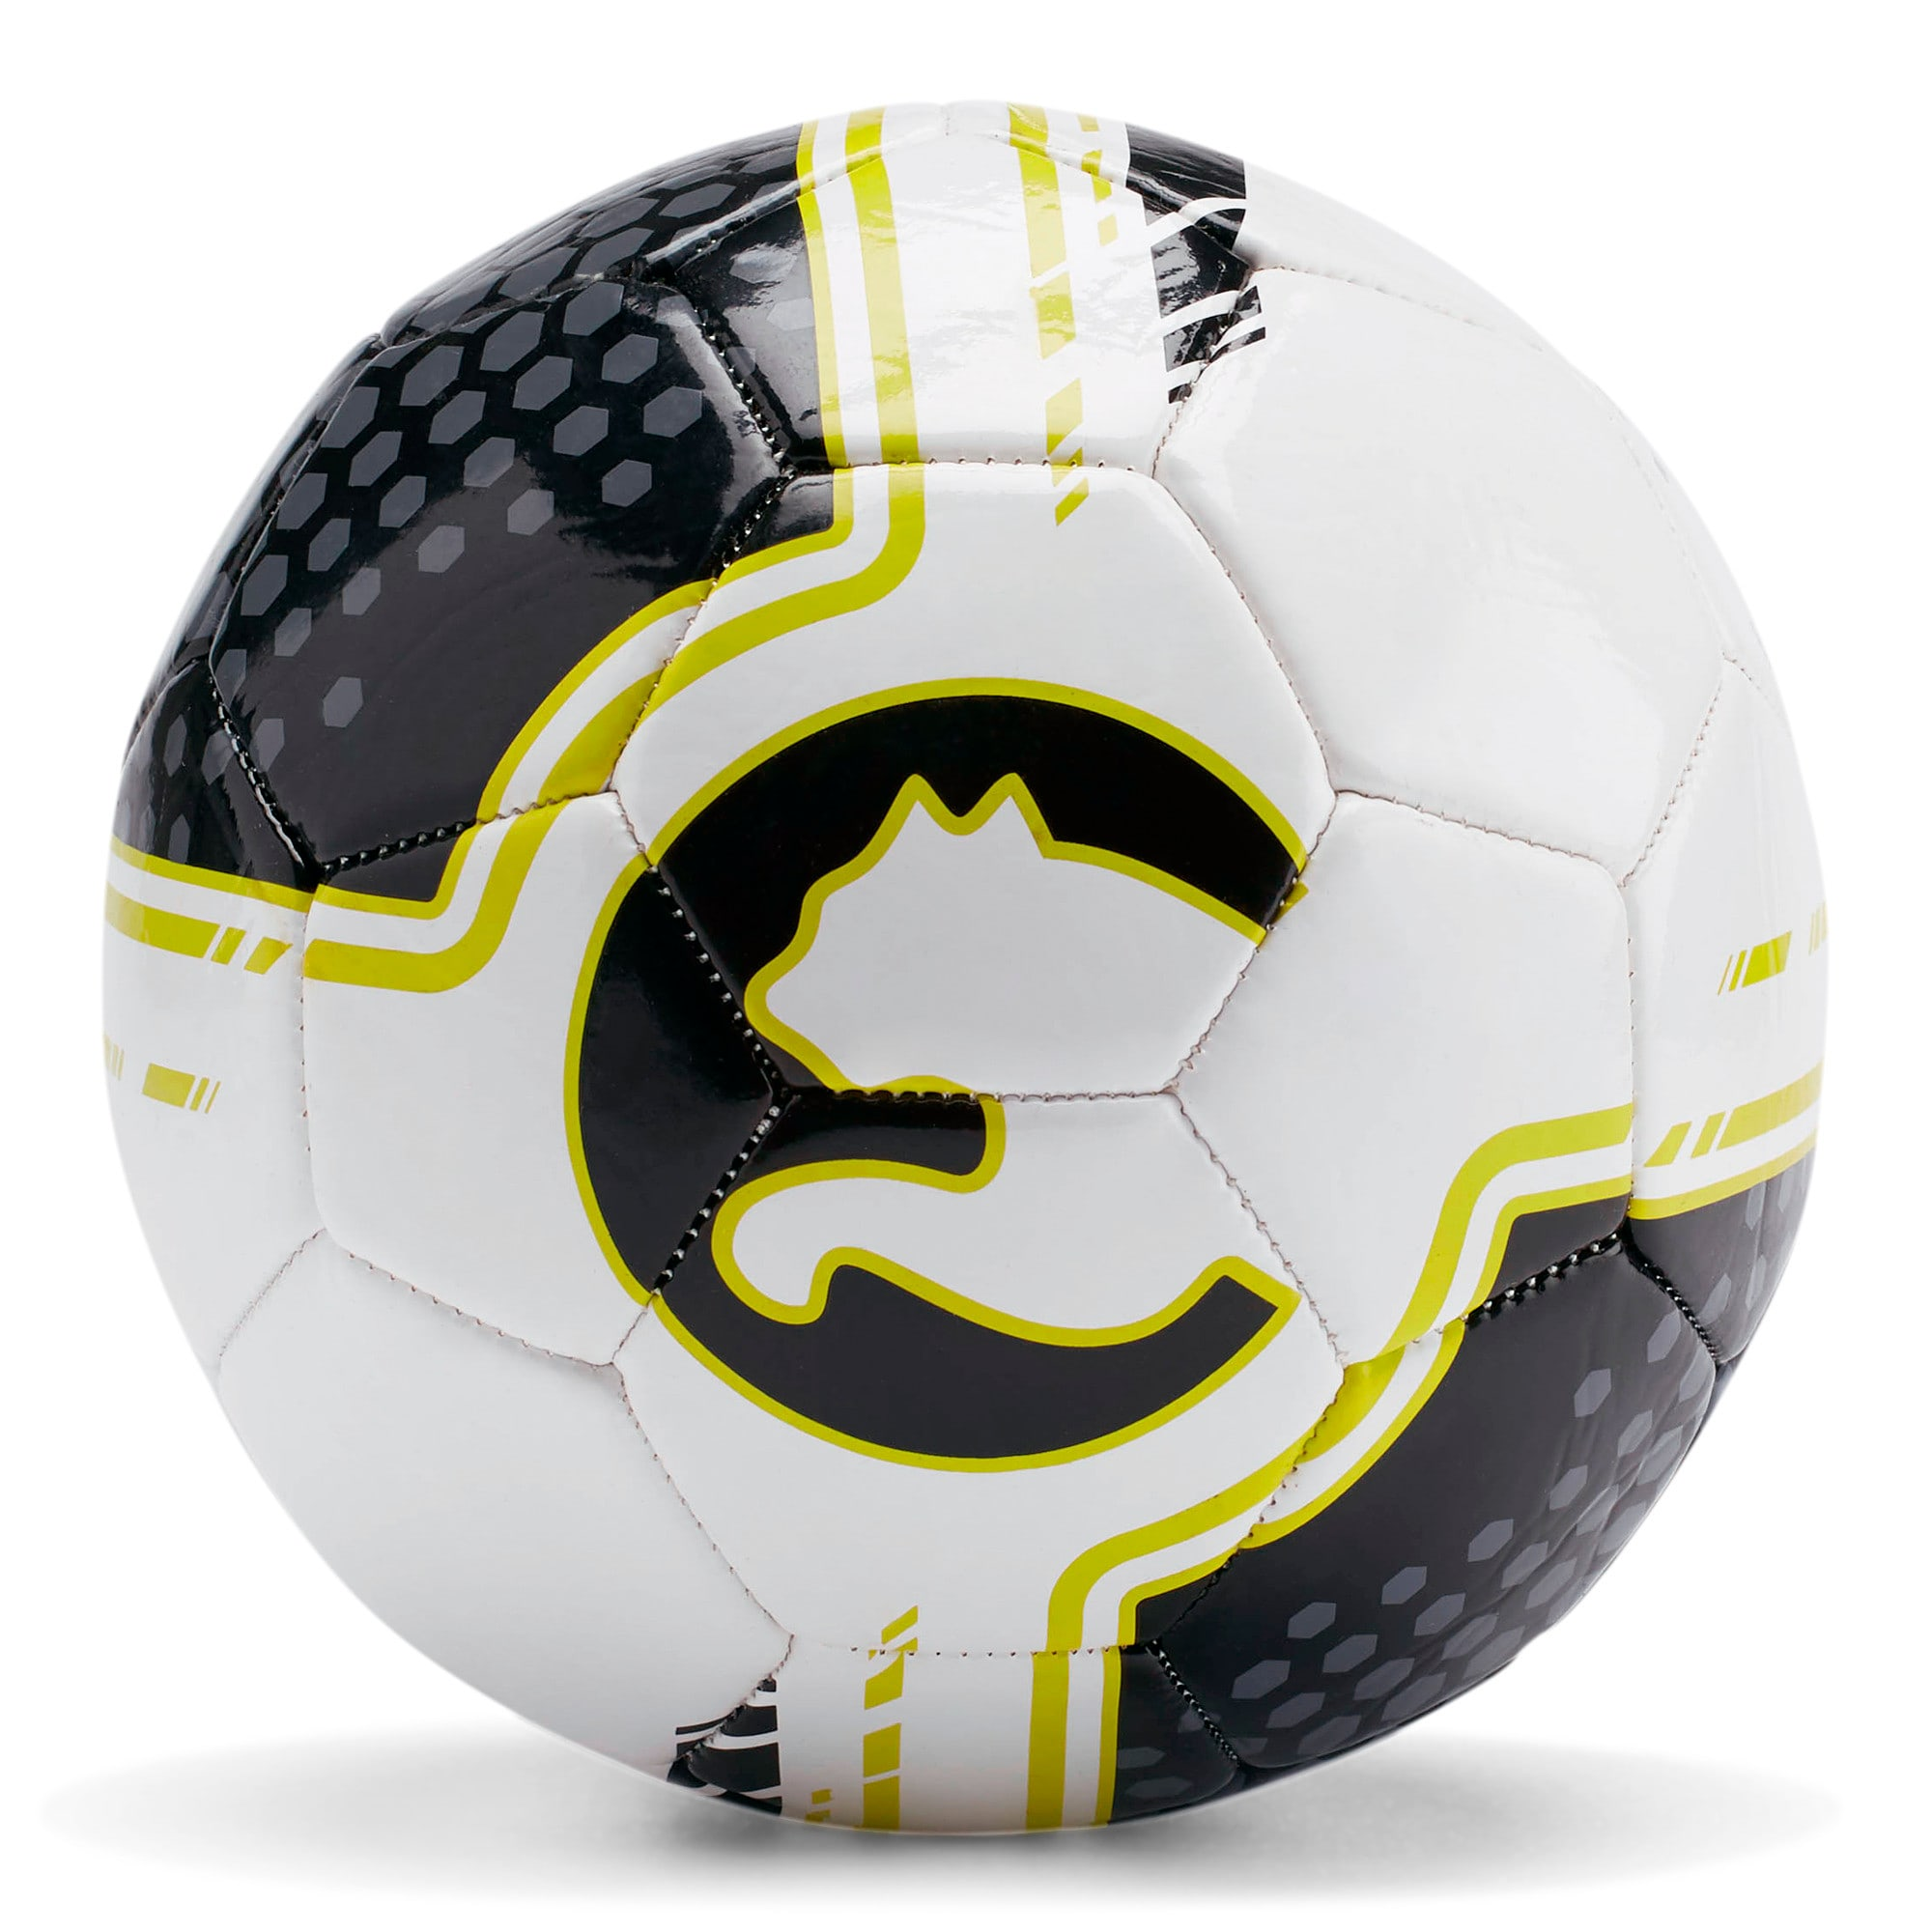 Thumbnail 1 of ProCat Scoreline 2.0 Soccer Ball, LIME, medium